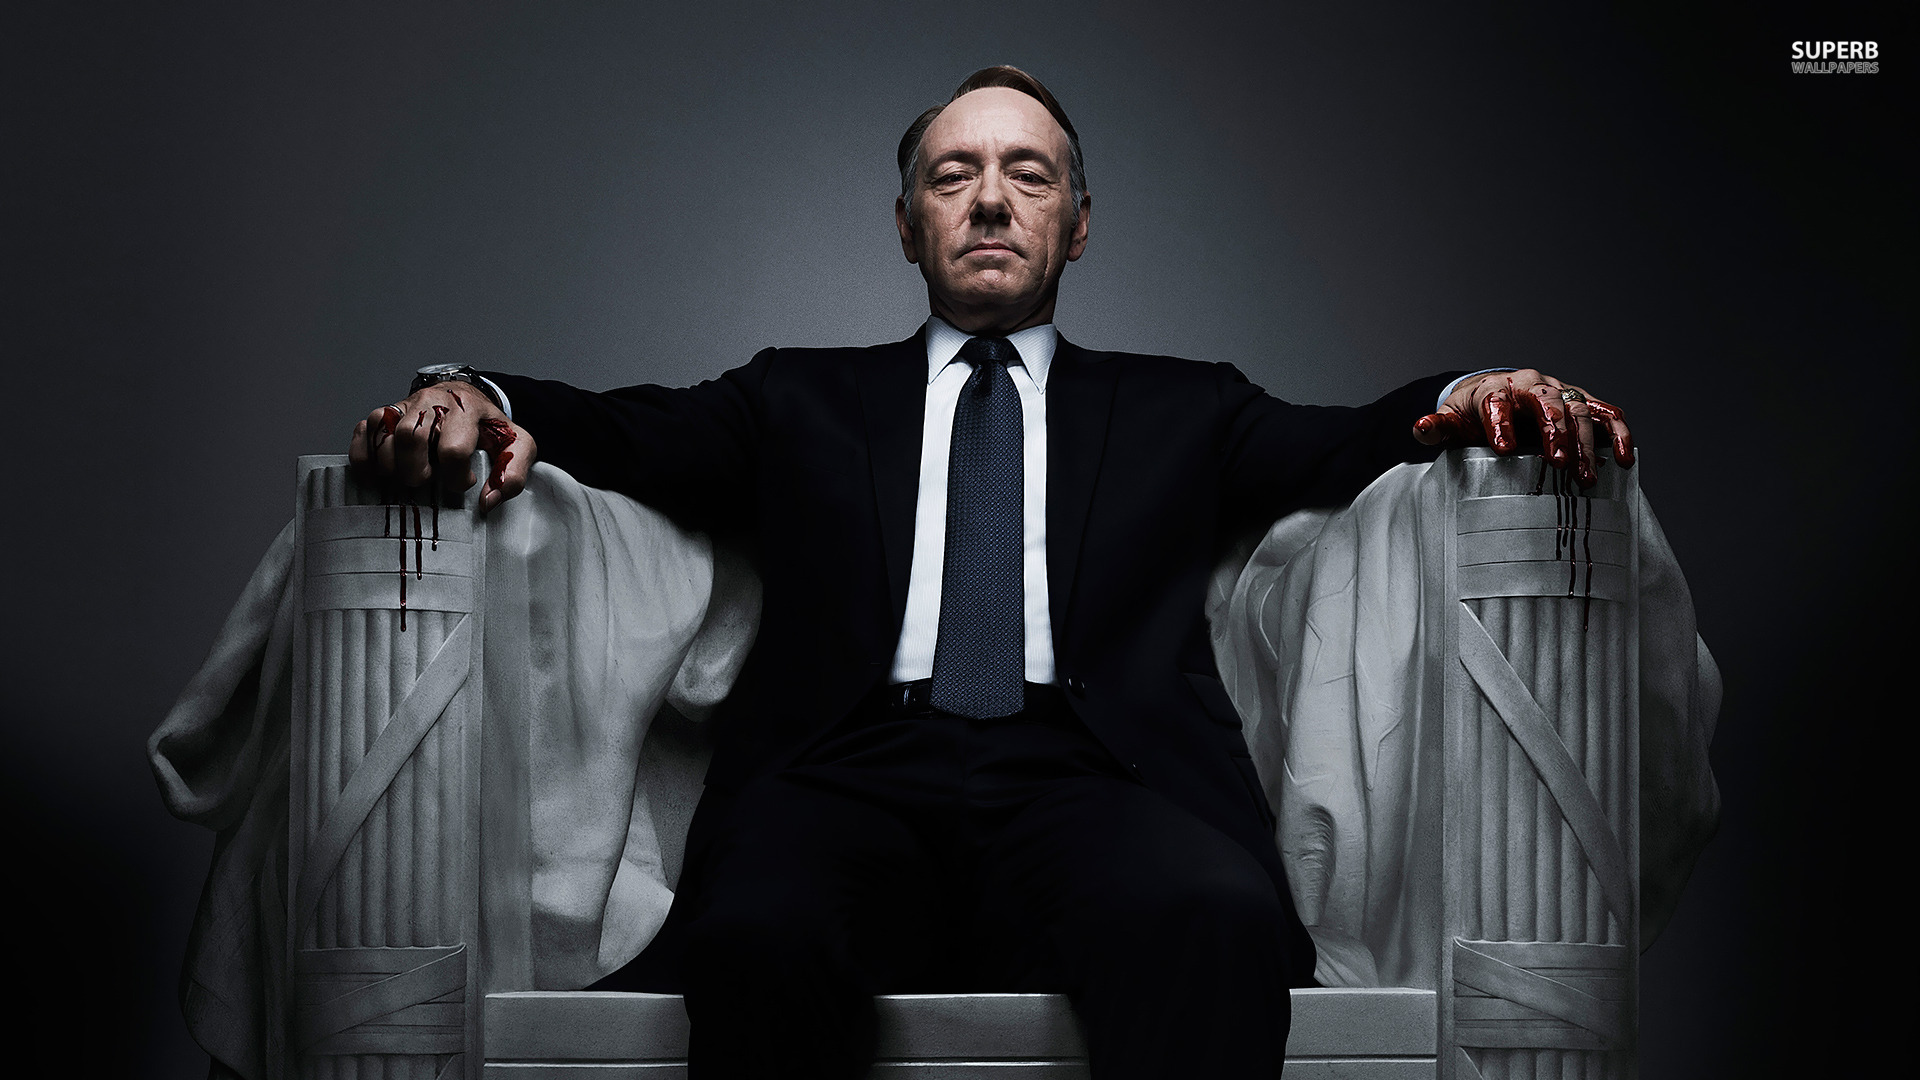 house_of_cards_wallpapers_1920x1080_03